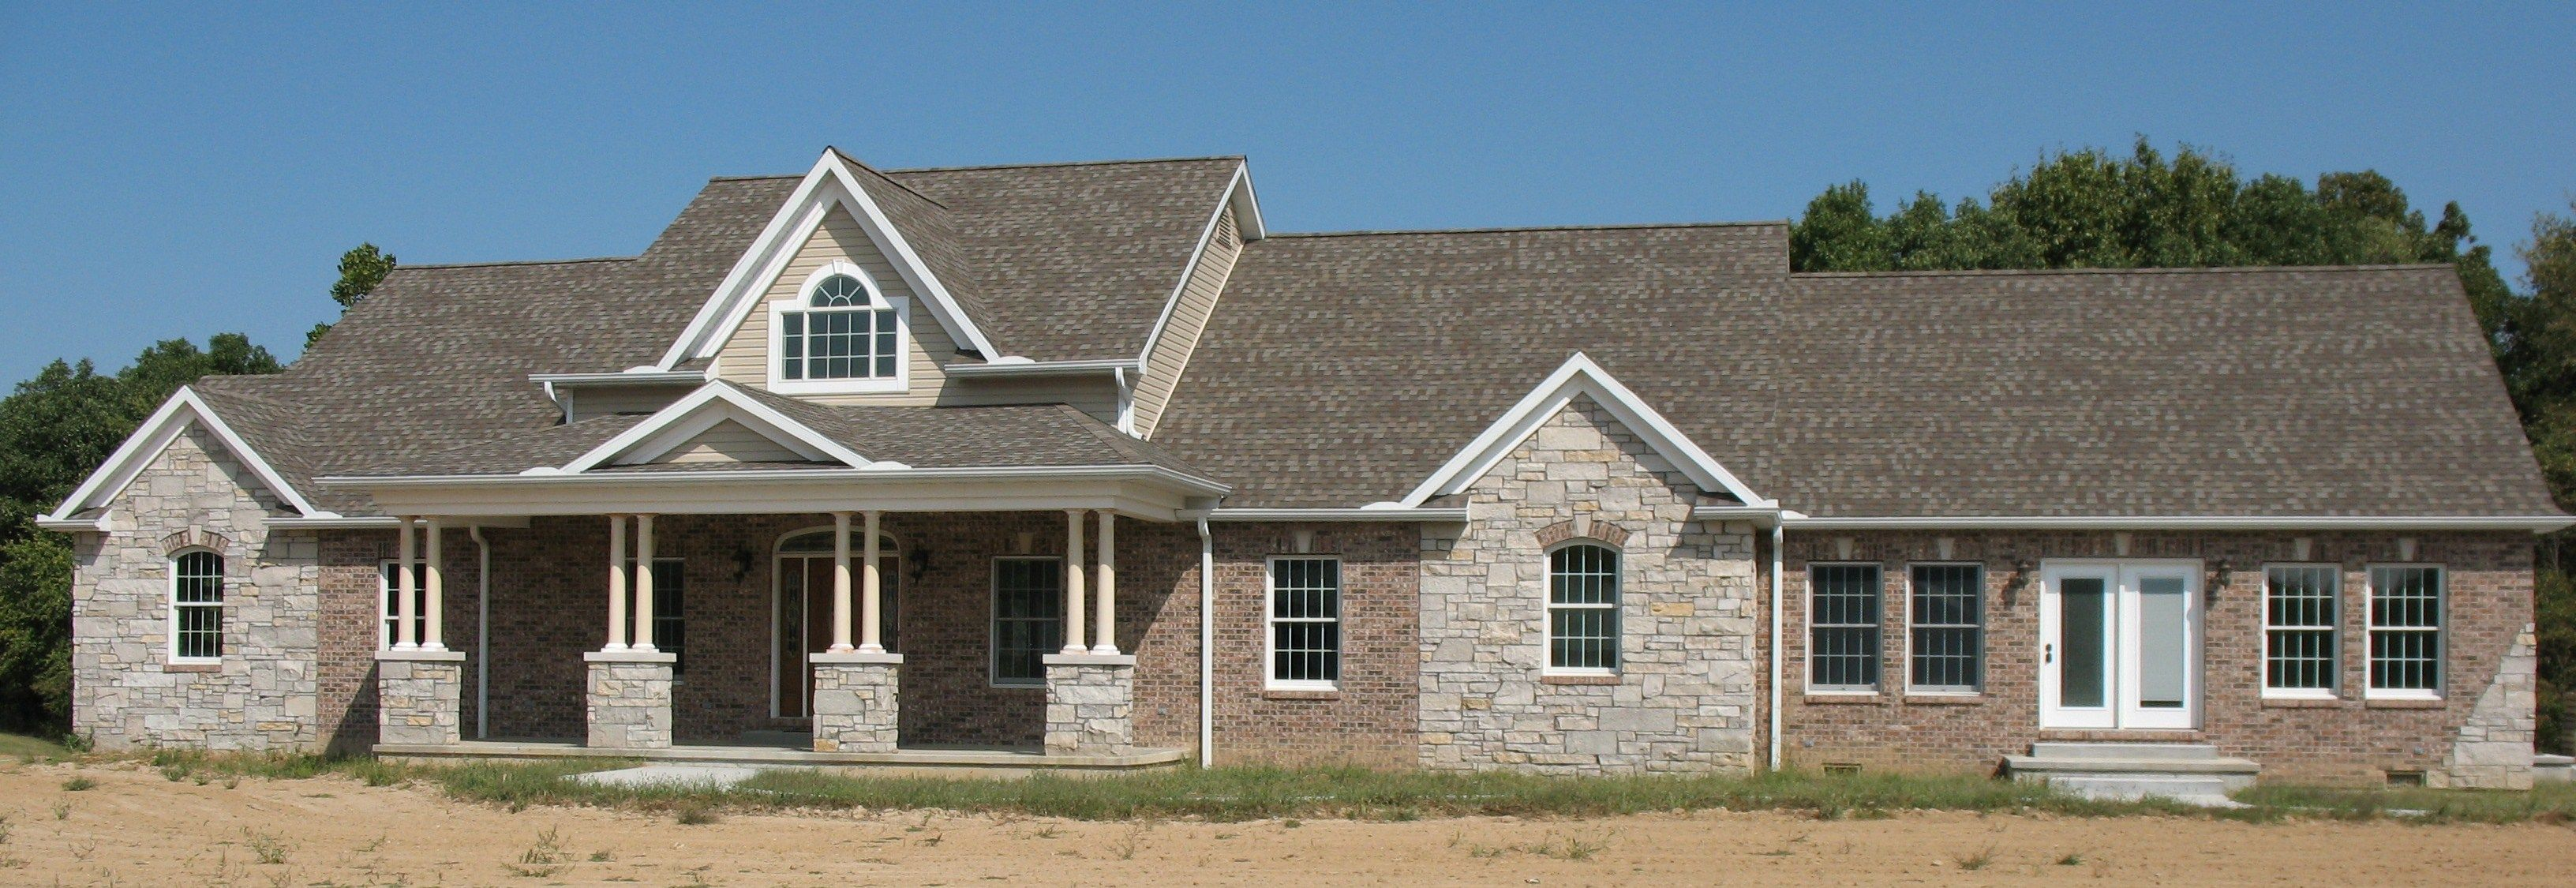 Brick and stone veneer exterior home photos brick and for Brick and stone veneer